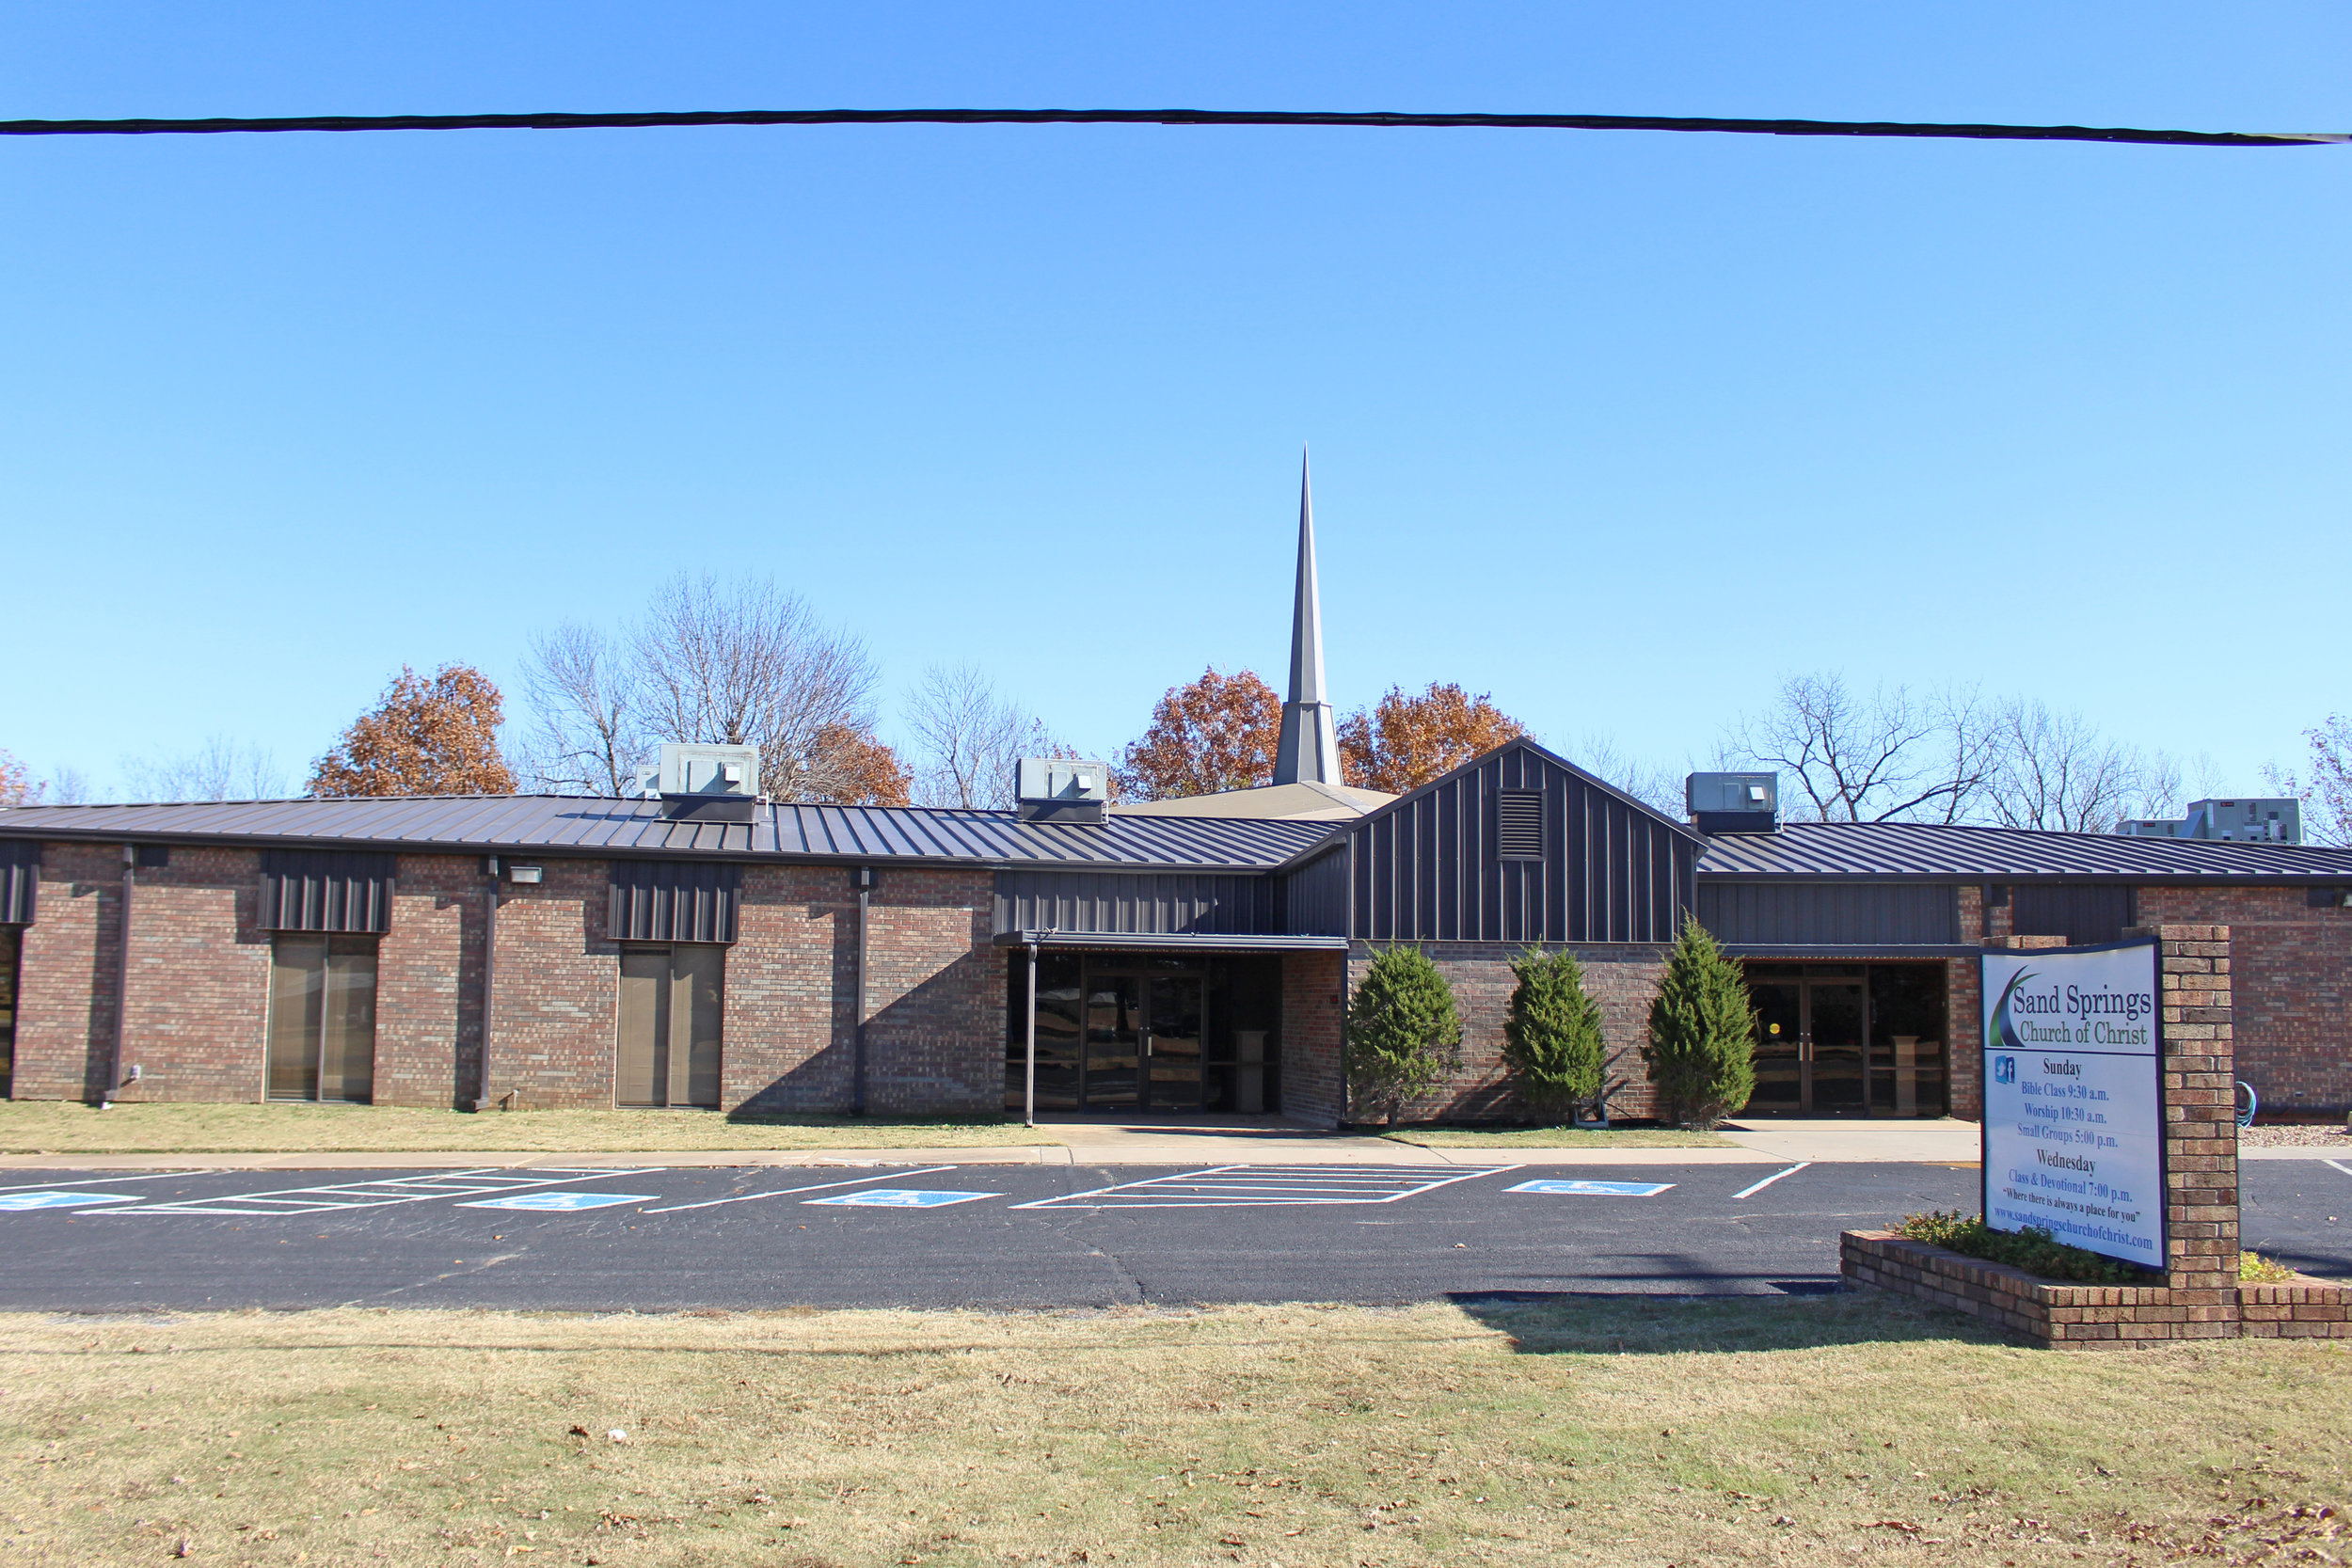 sand springs church of christ - prattville 4301 south 113th west avenue